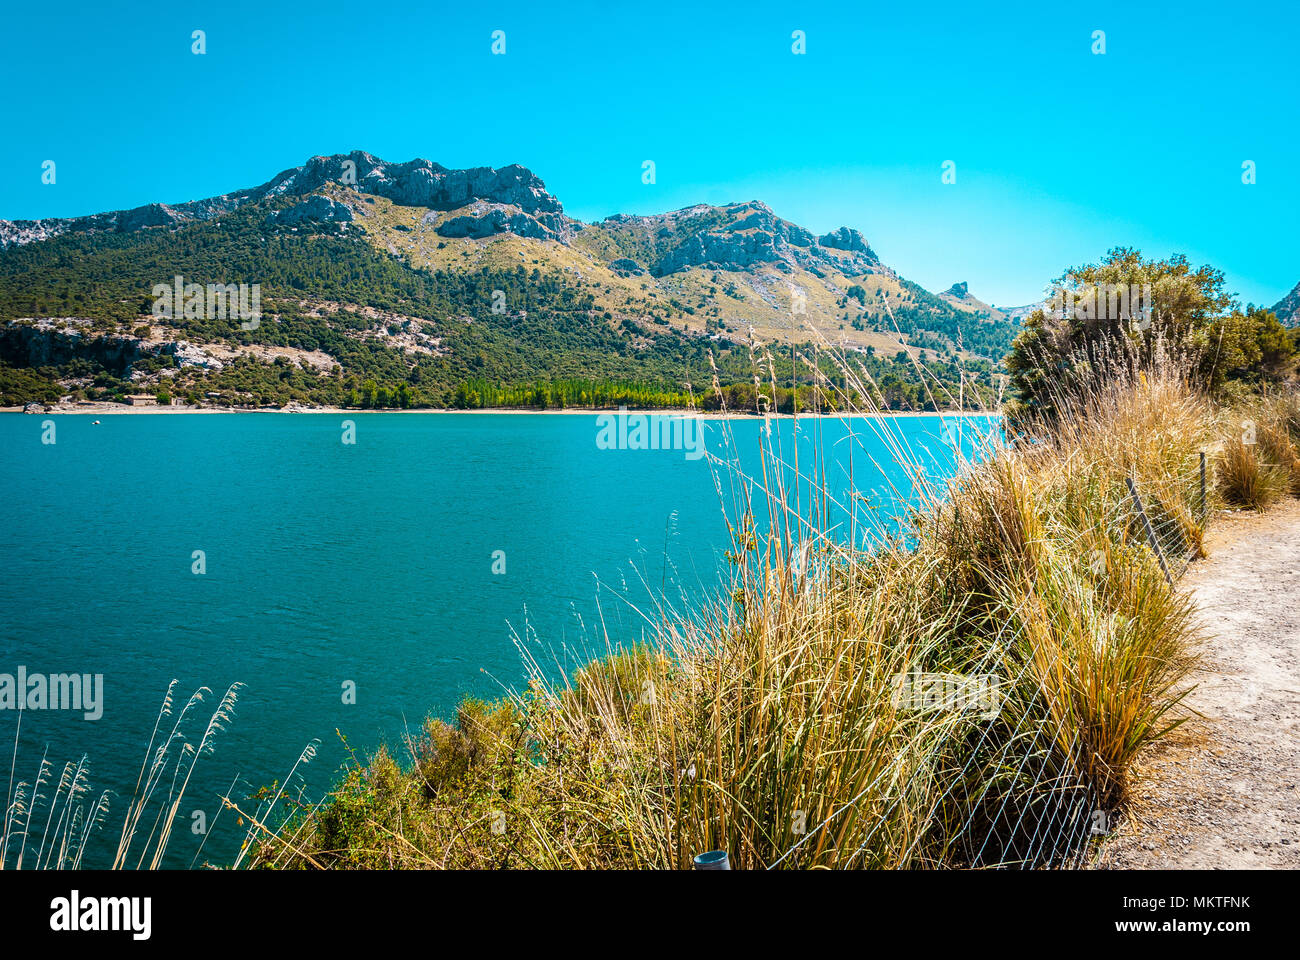 Gorg Blau, artifical lake, water supply mallorca - Stock Image